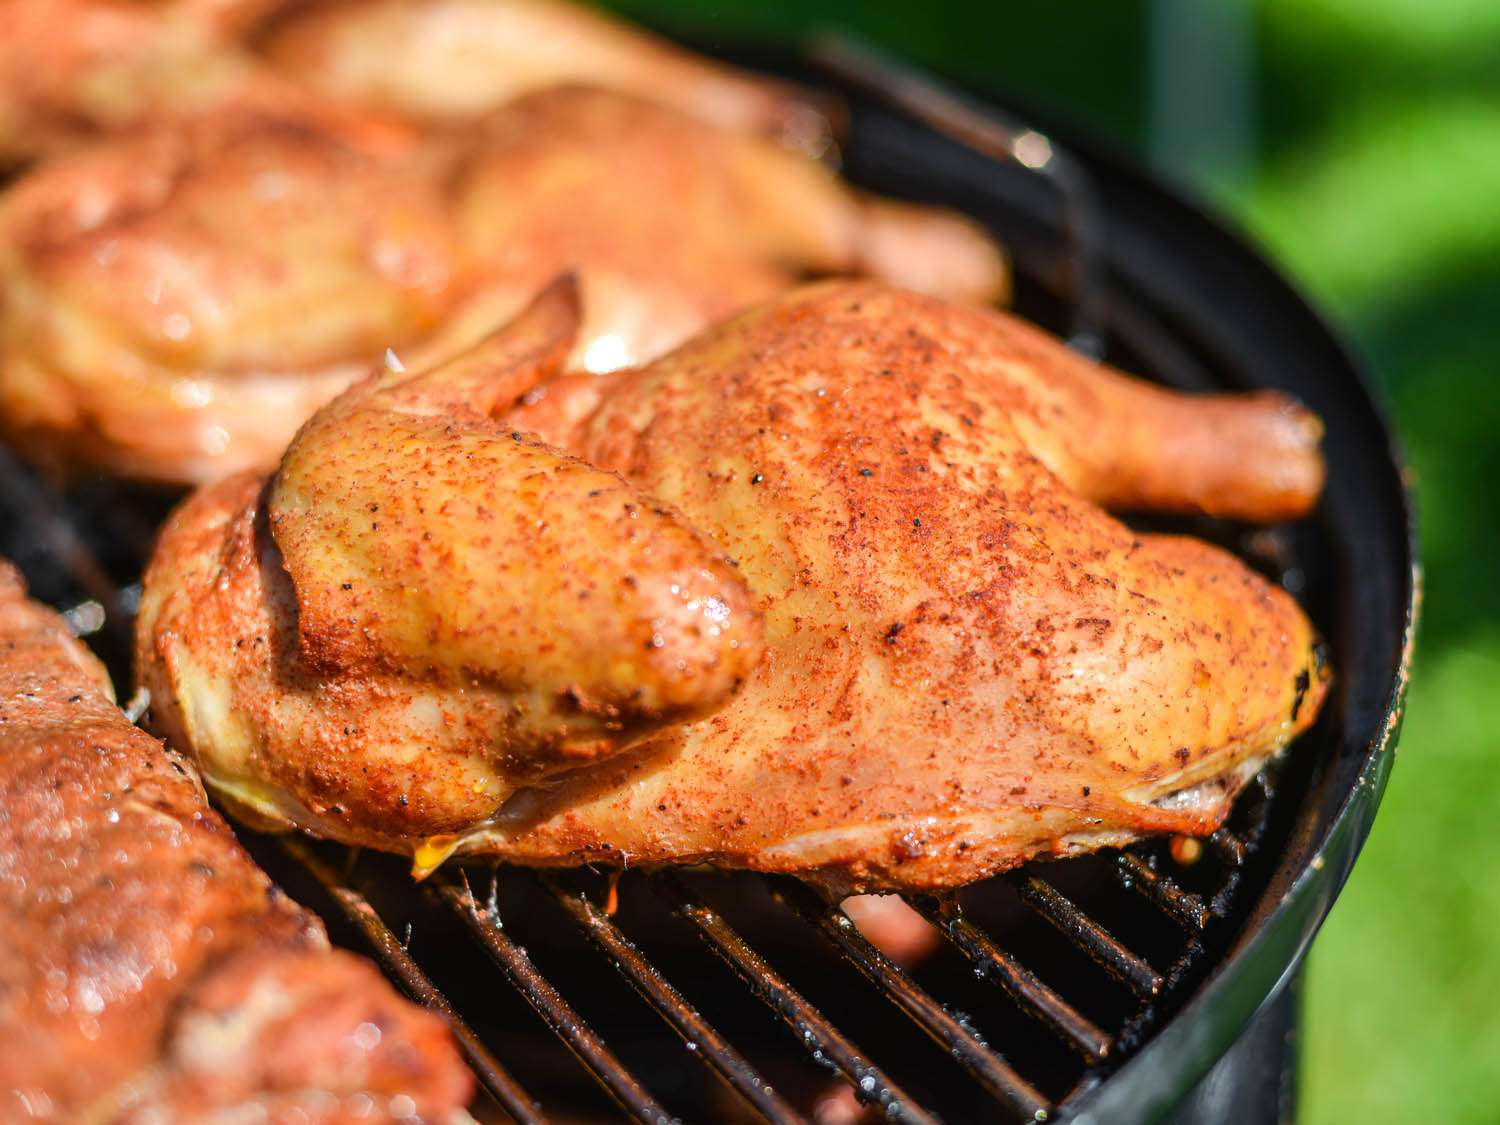 20140625-pulled-chicken-slow-smoked.jpg